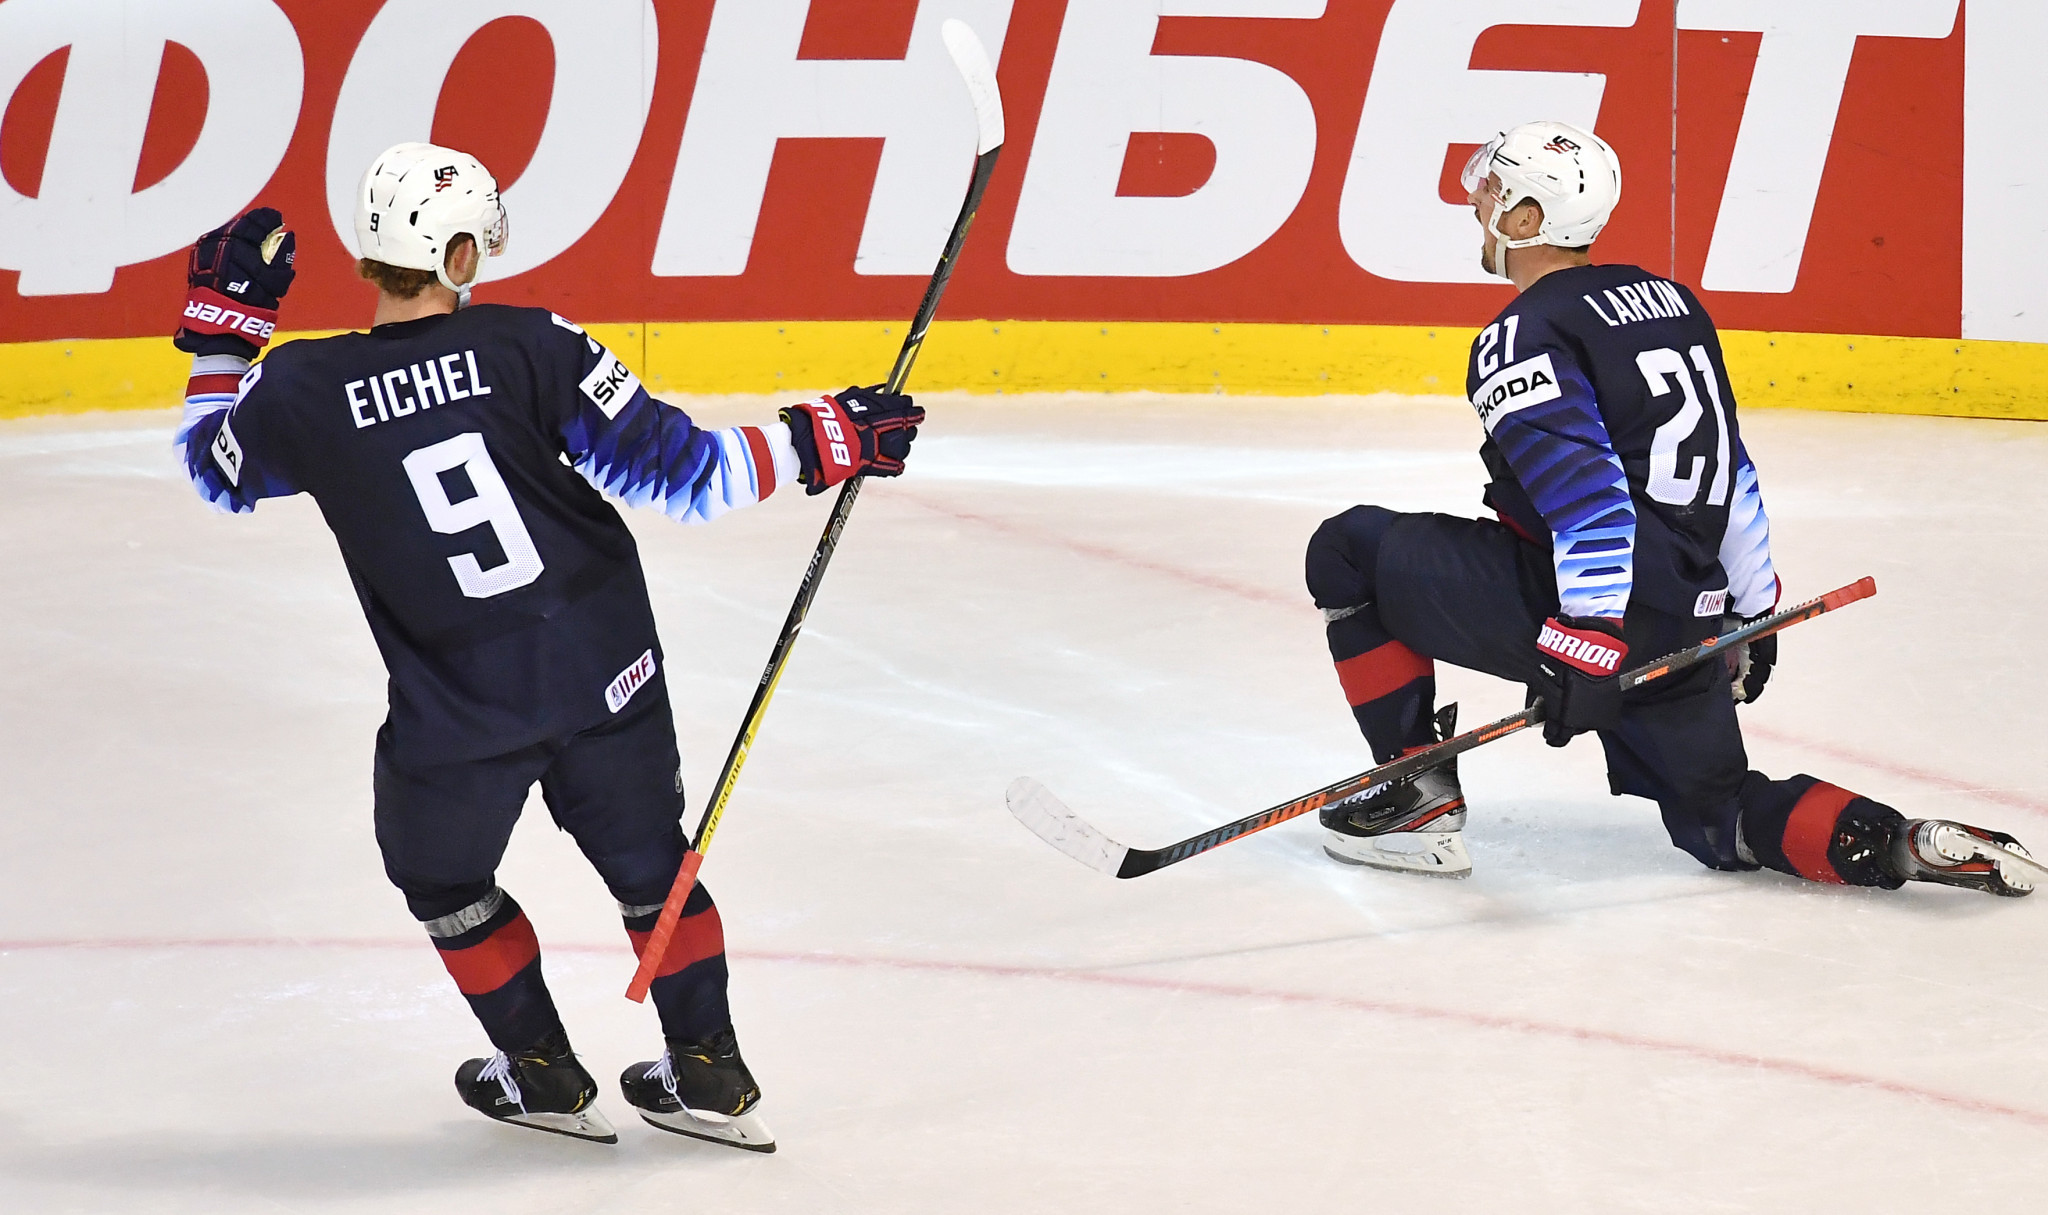 United States continued their resurgence from an opening-night loss against hosts Slovakia by beating Finland at the IIHF World Championship today ©Getty Images